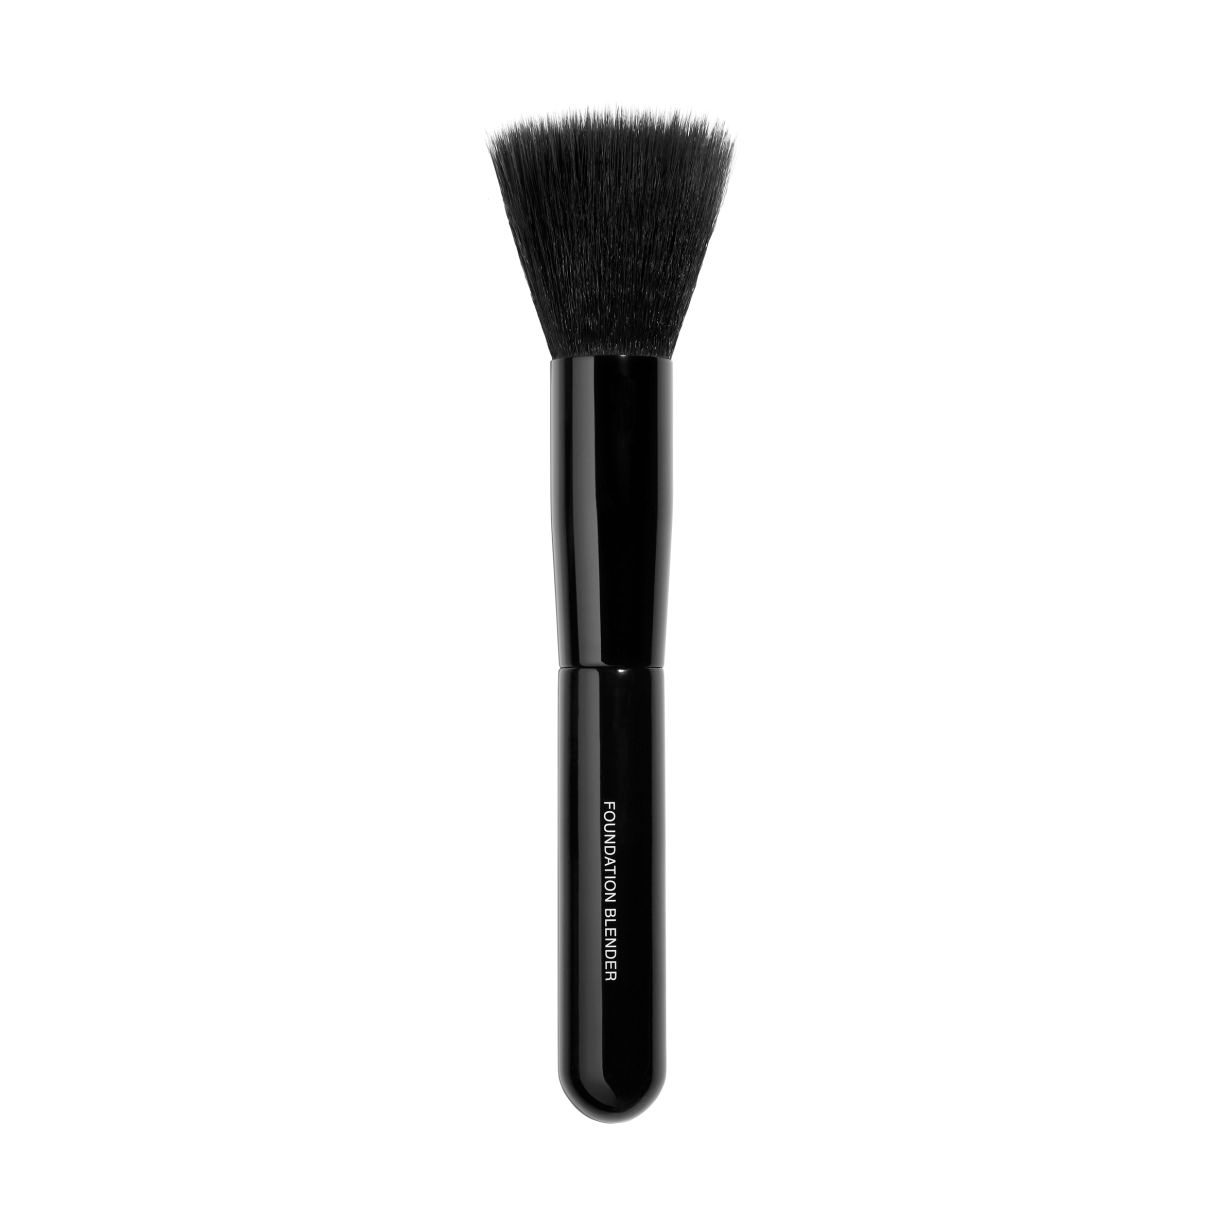 FOUNDATION-BLENDING BRUSH 調和粉底掃